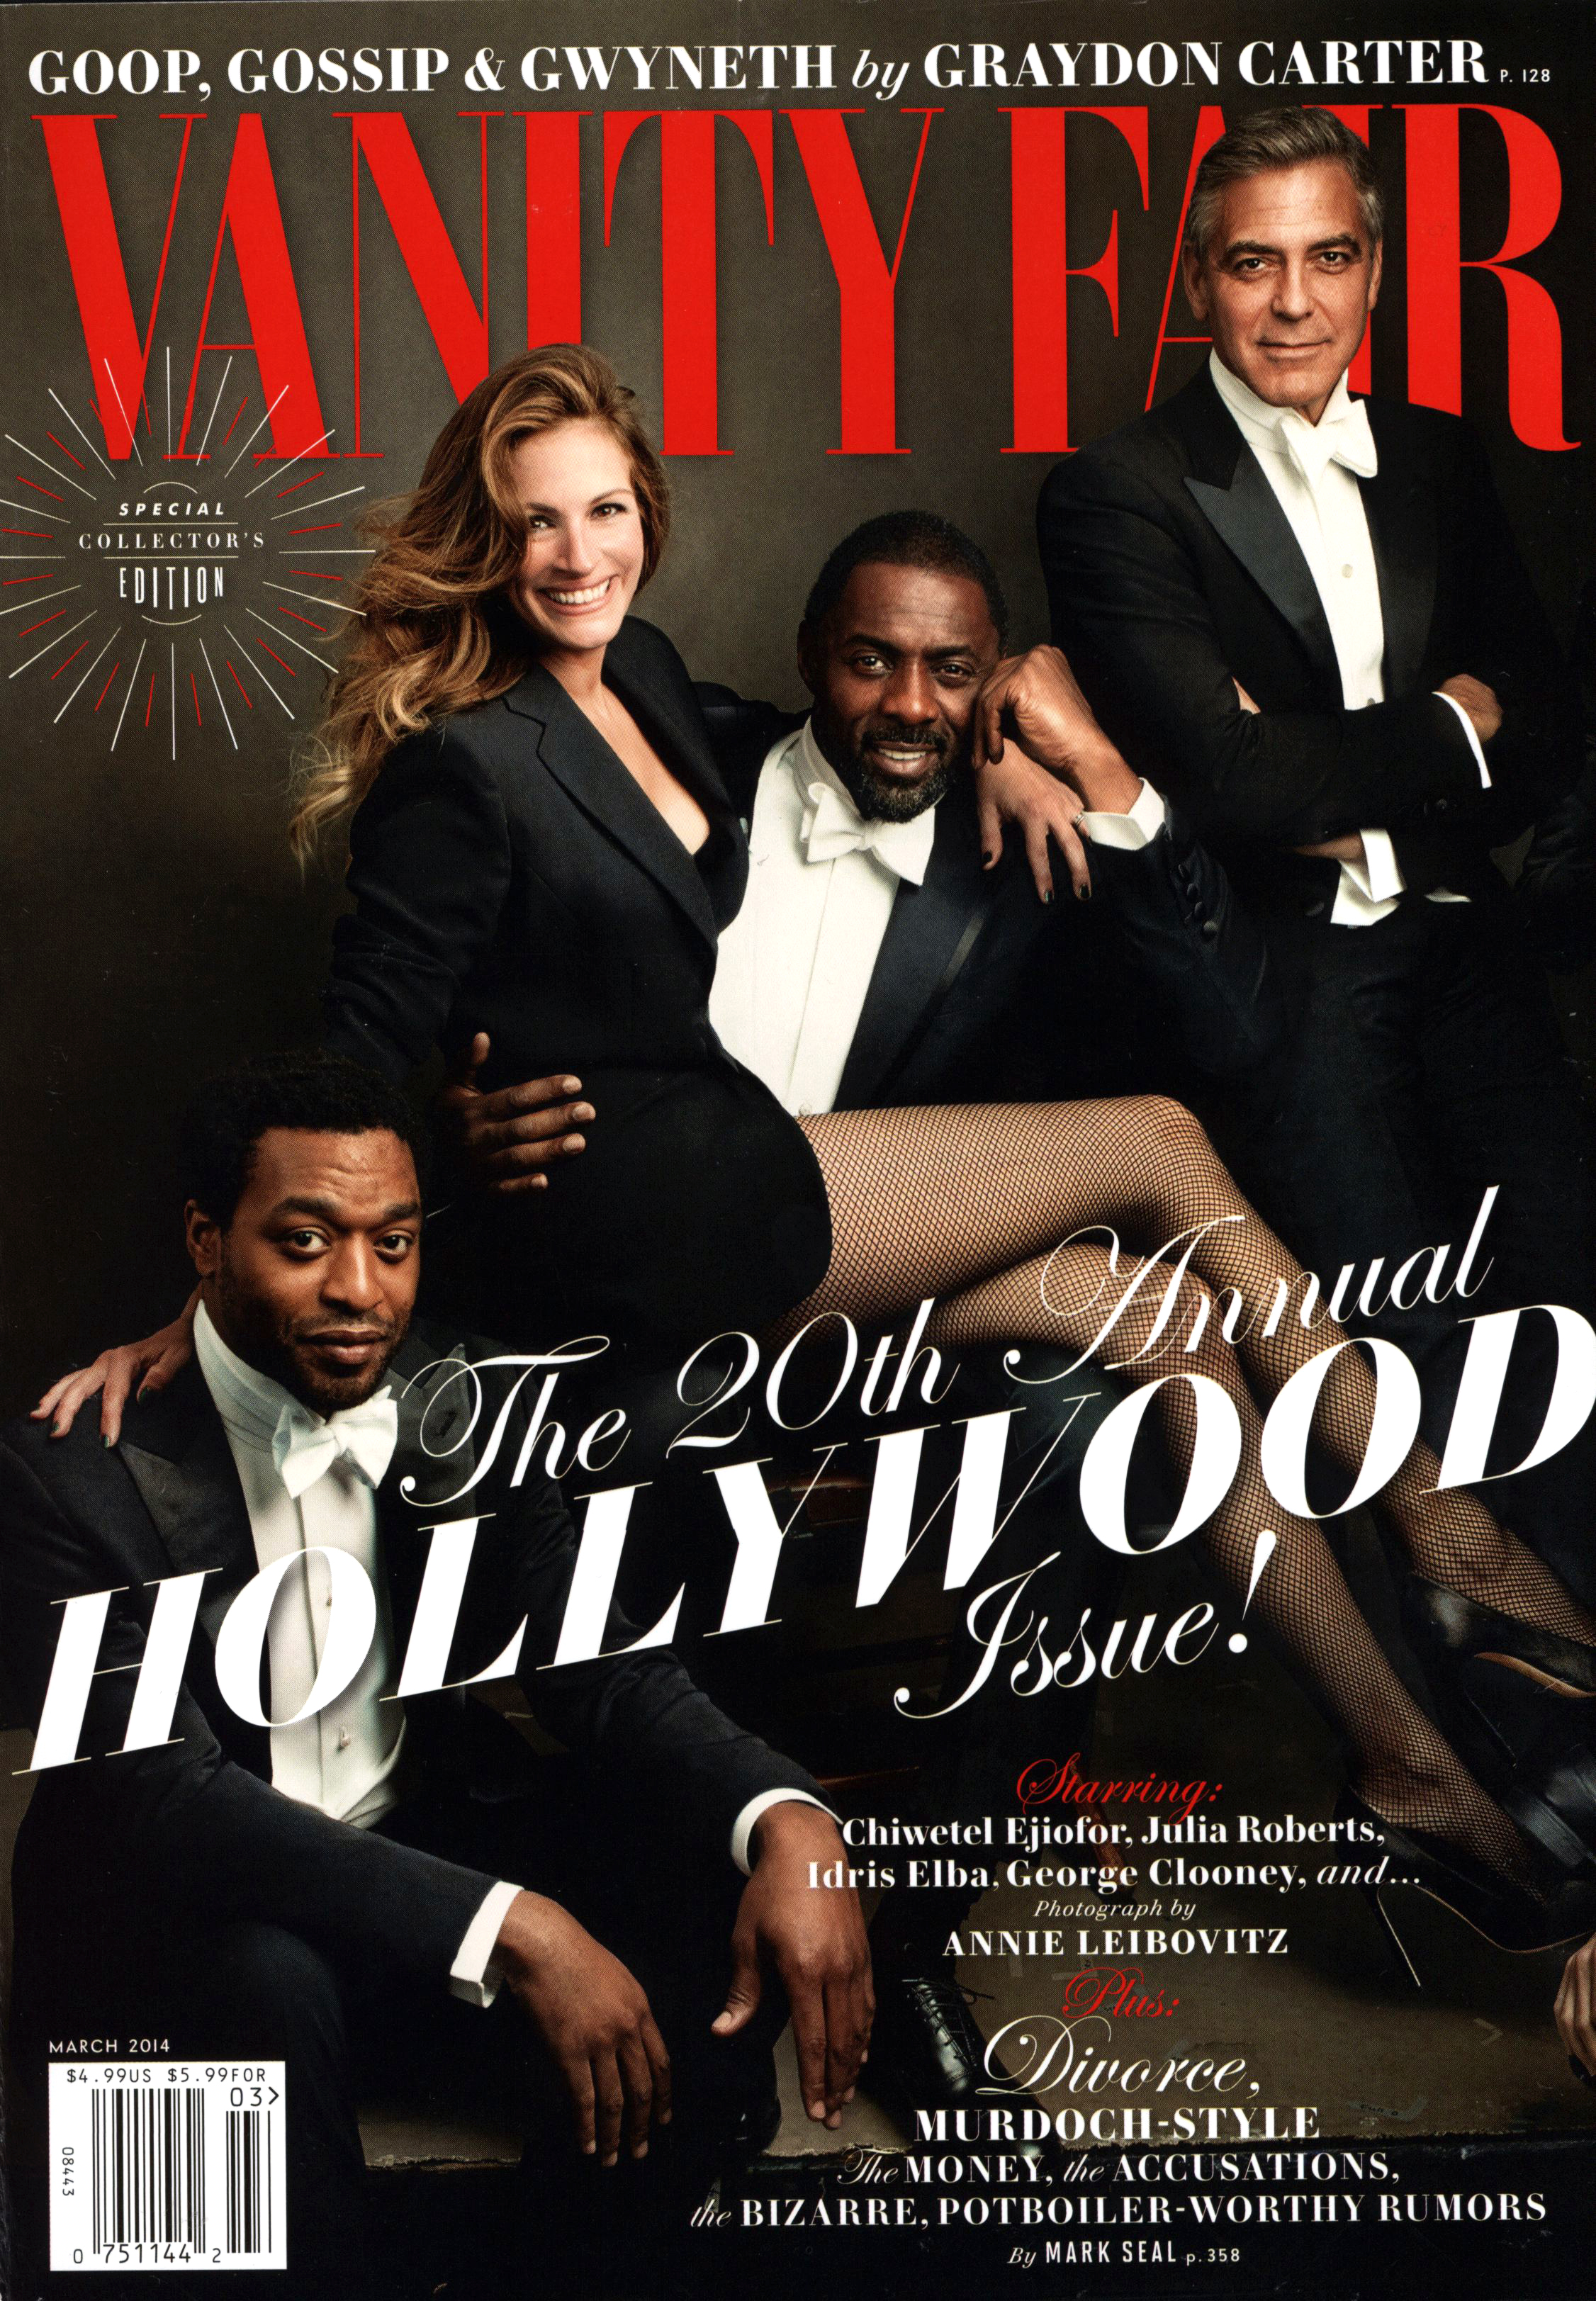 Vanity Fair March 2014 Hollywood Issue Cover - Lili Anolik.jpg